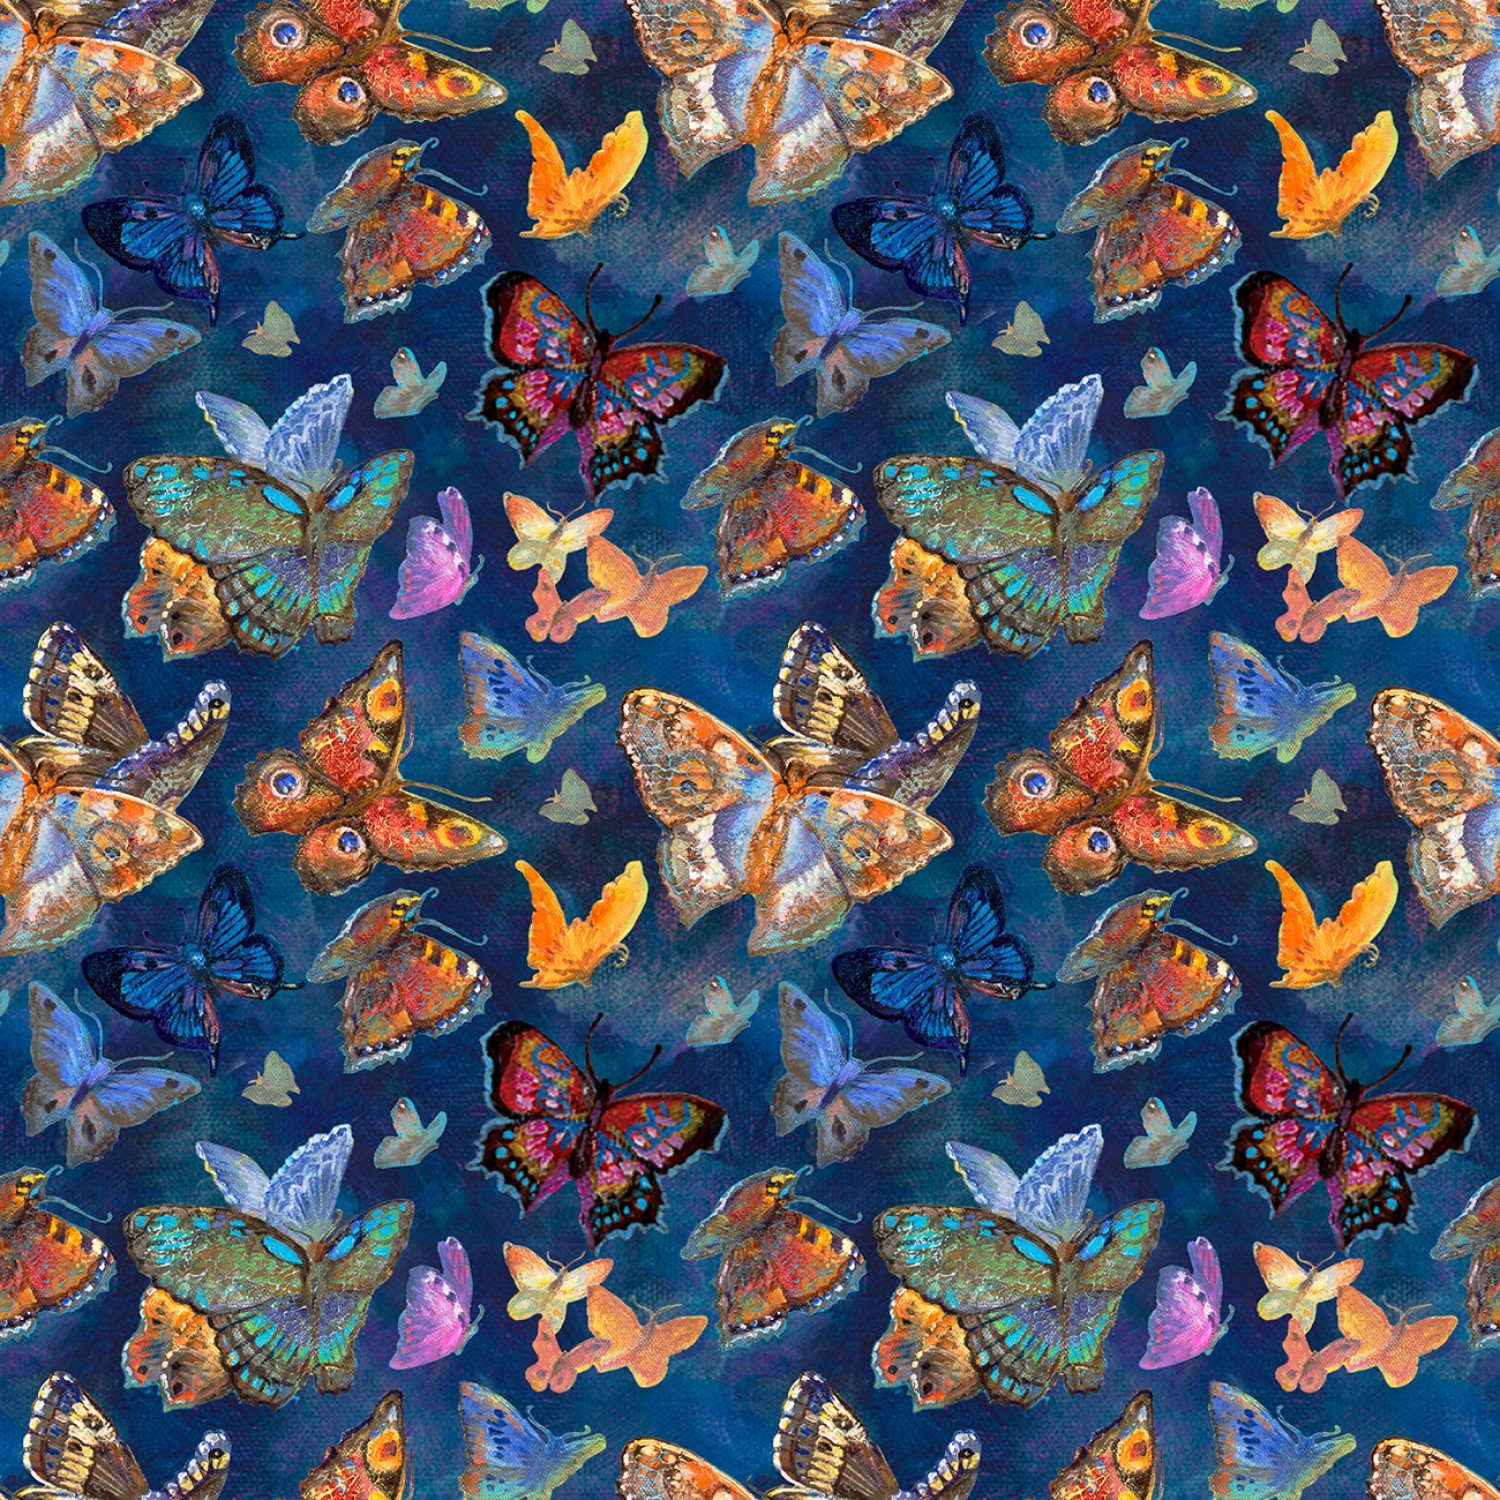 Butterflies Fabric - Multi Ray of Hope Collection by Three Wishes Fabrics